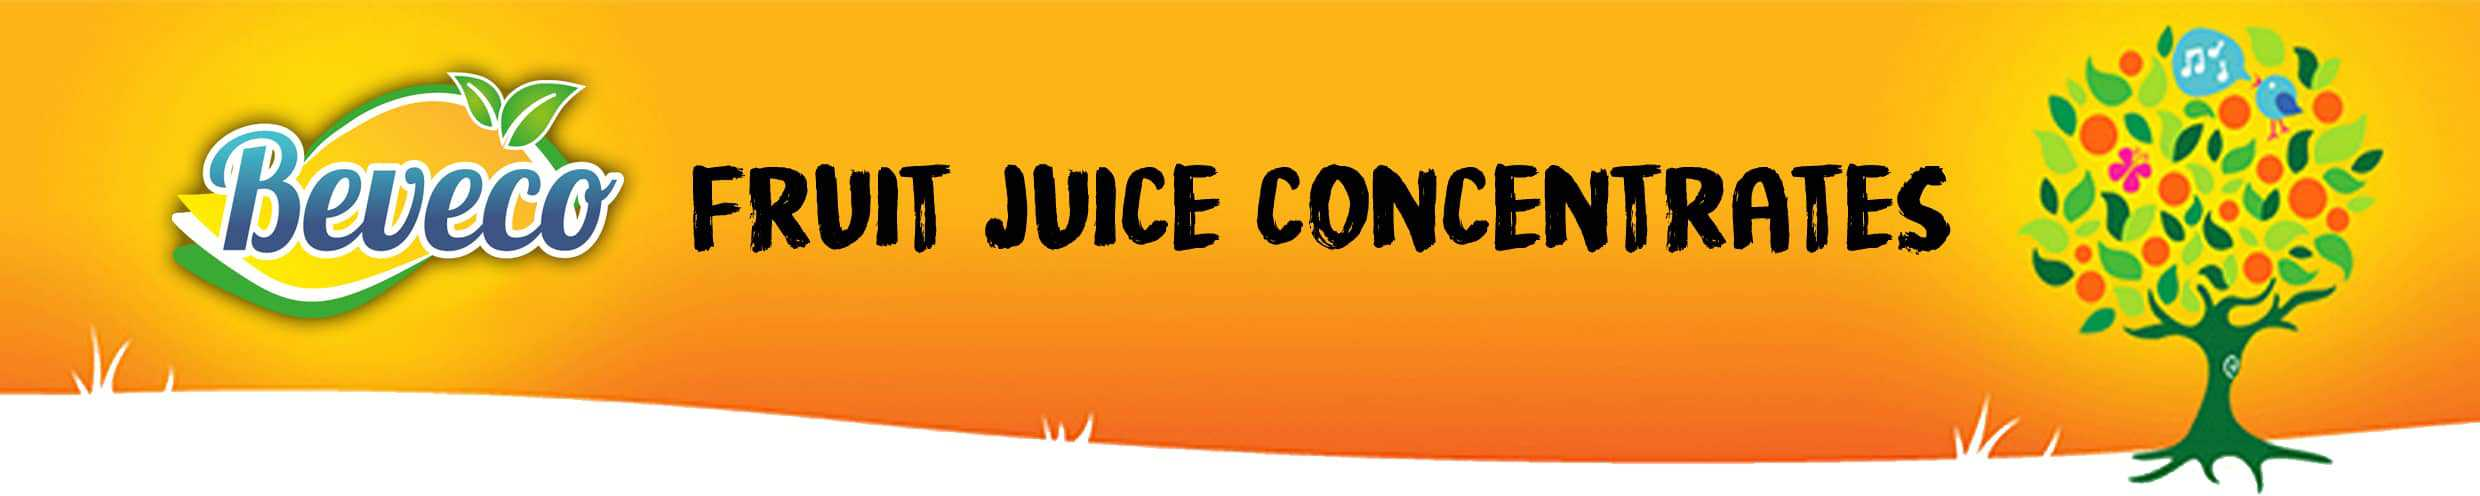 Fruit Juice Concentrates By Beveco